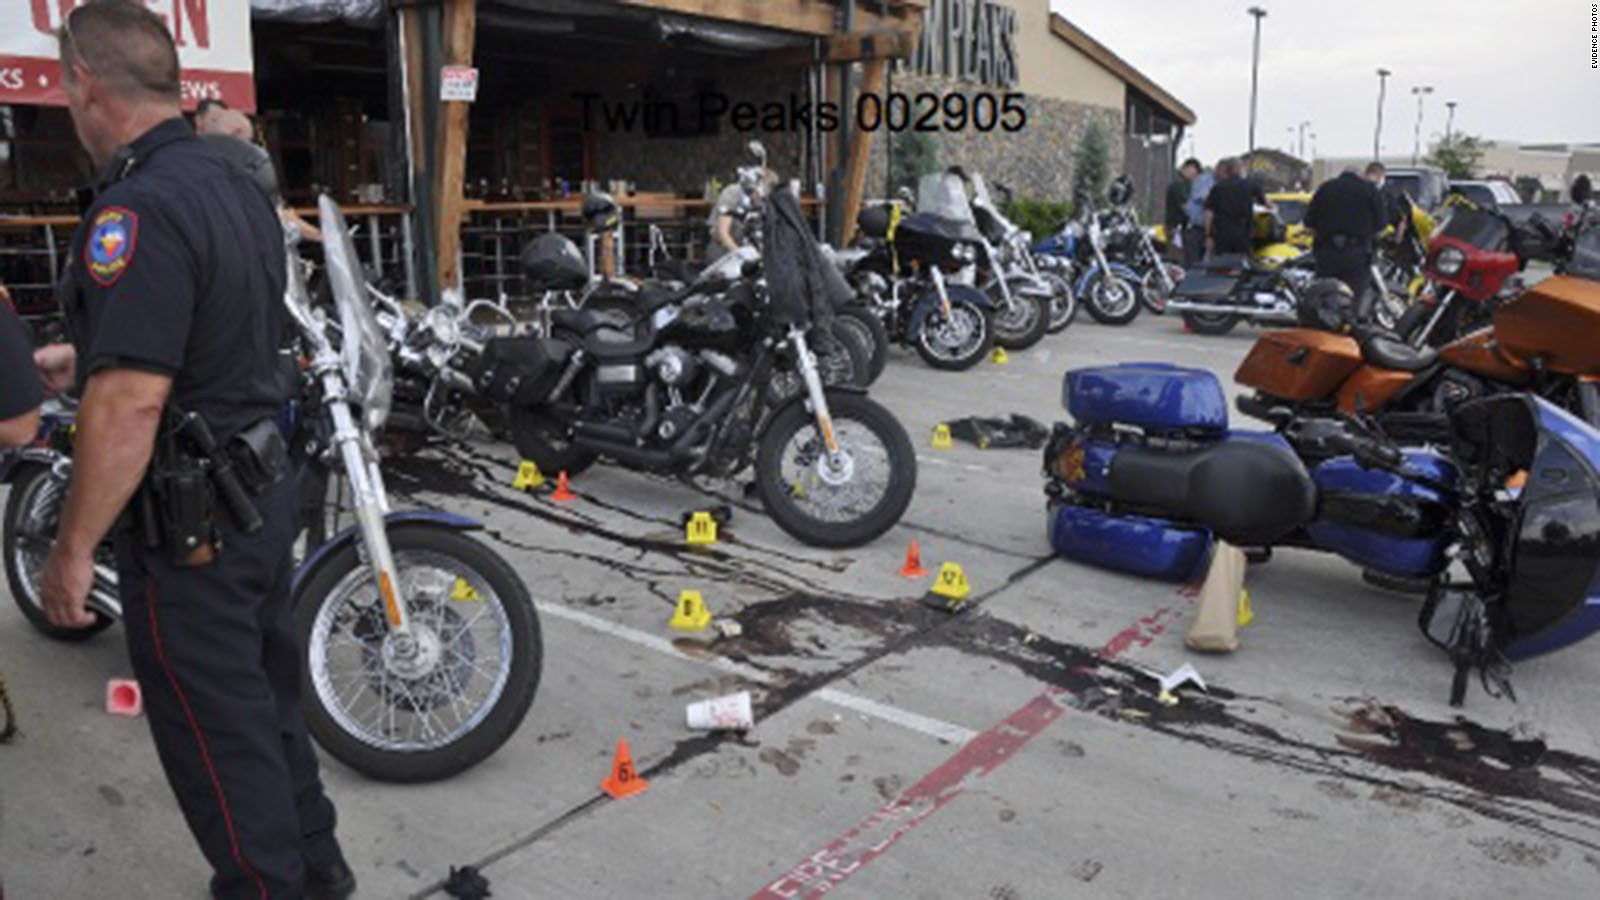 motorcycle shooting vs  New video shows angle on how Waco biker shootout begins - CNN